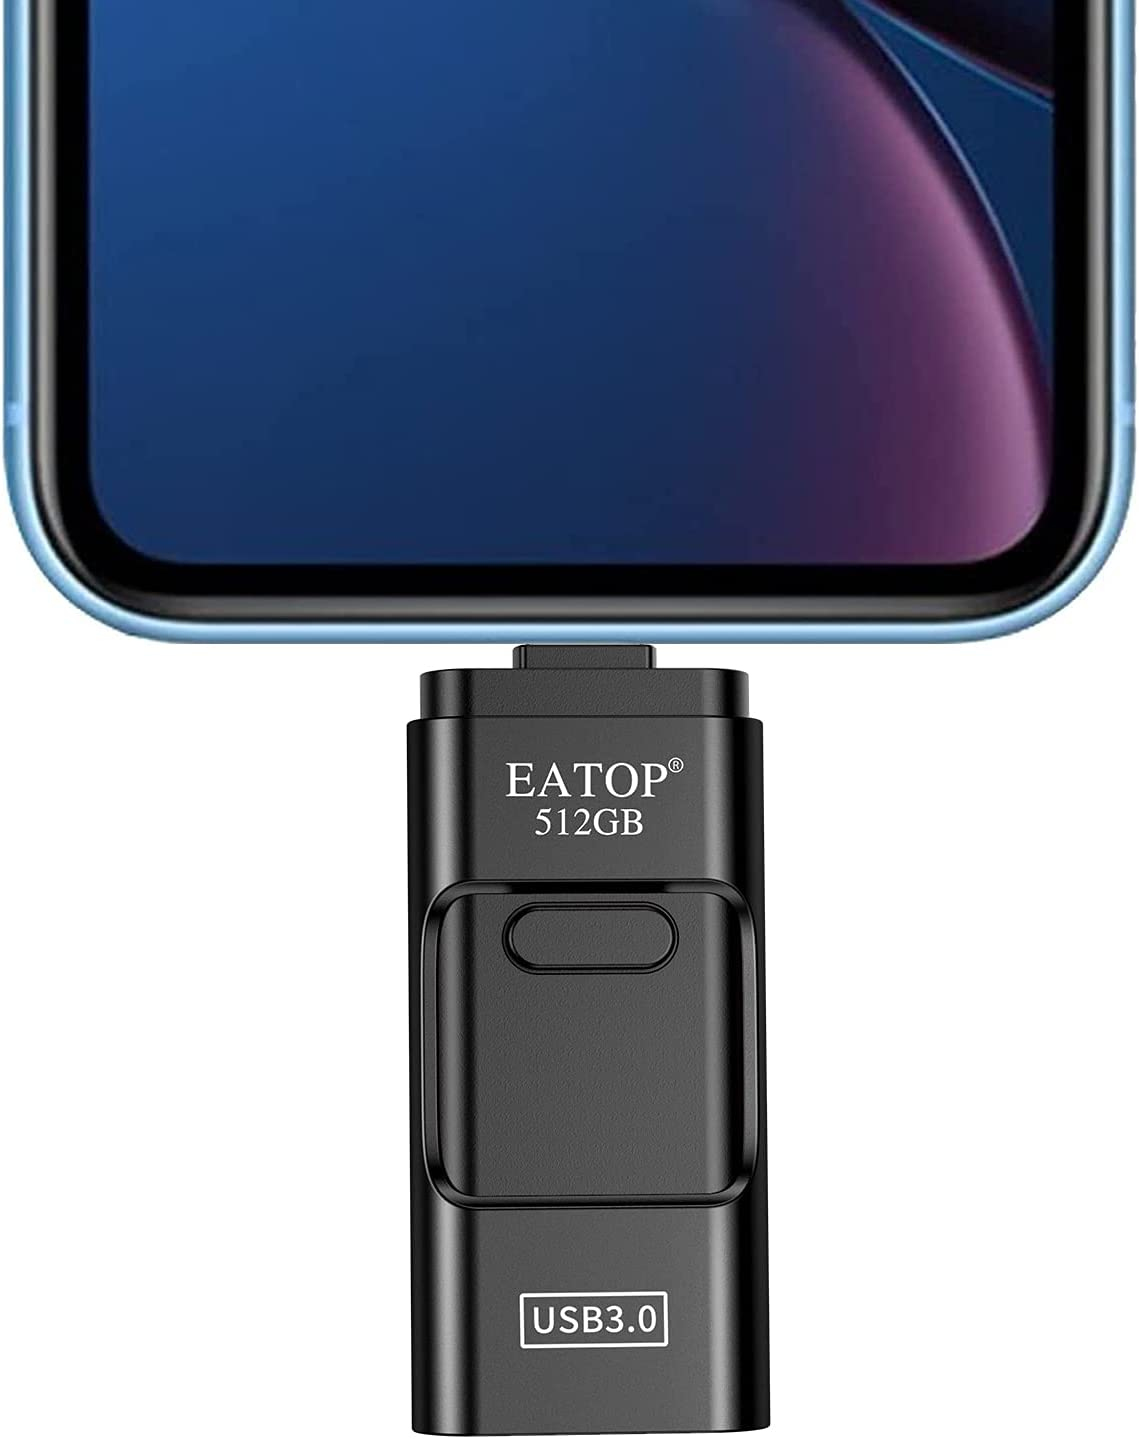 EATOP USB Flash Drive 512GB Storage for Photos, USB Memory Stick Thumb Drive Photo Storage Device Compatible with iPhone, Android and Computers (Black)